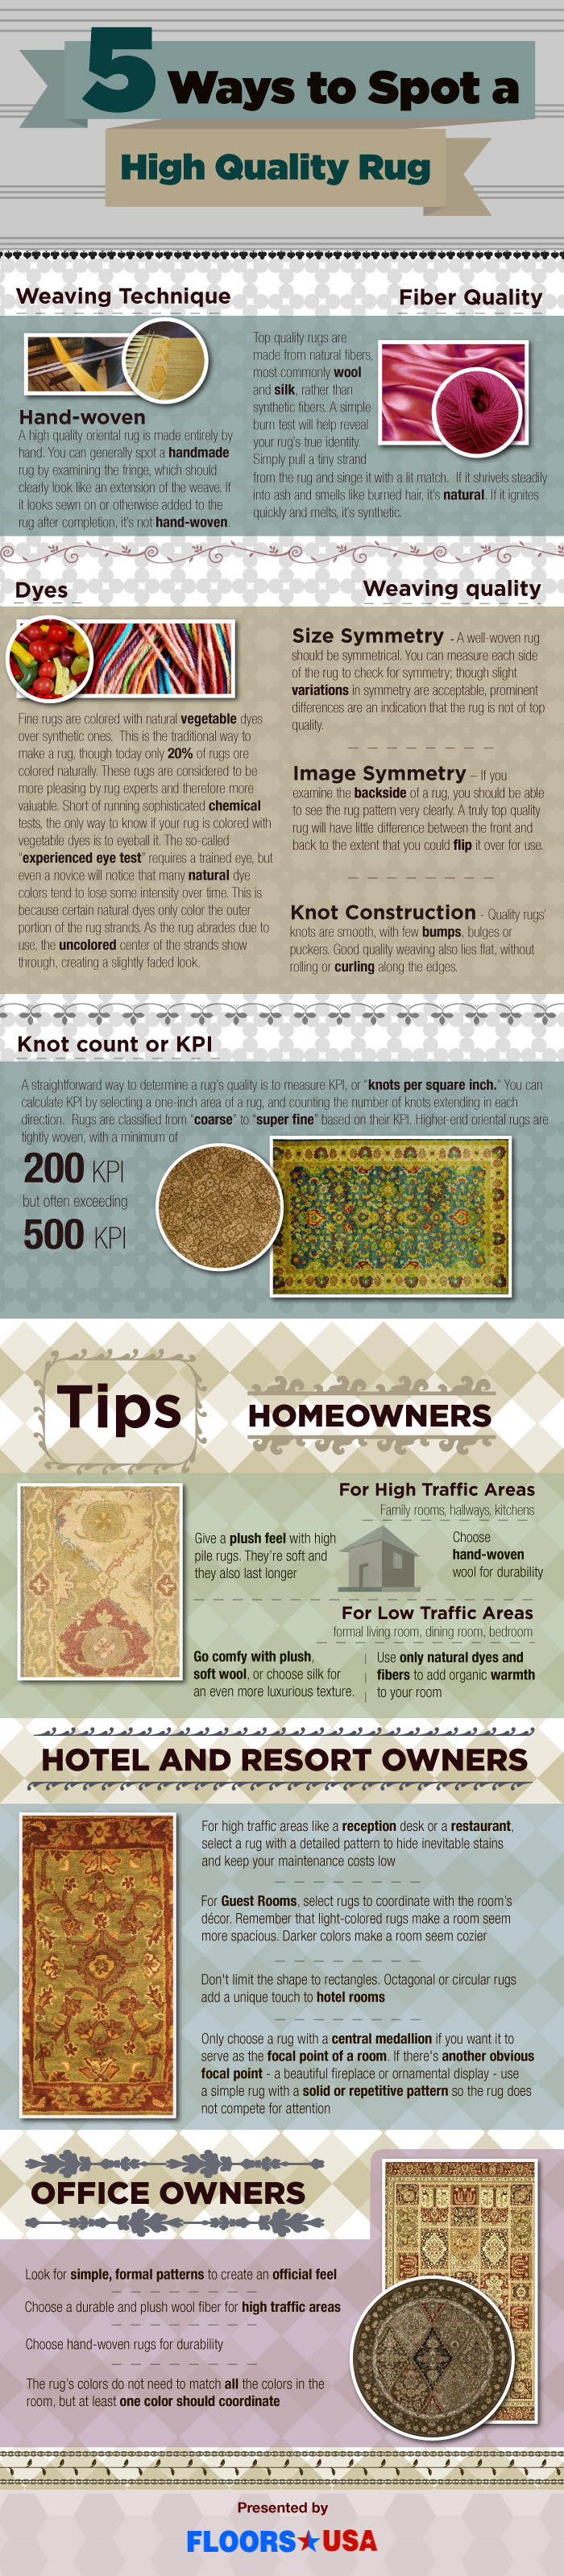 5-Ways-To-Spot-a-High-Quality-Rug-Infographic-